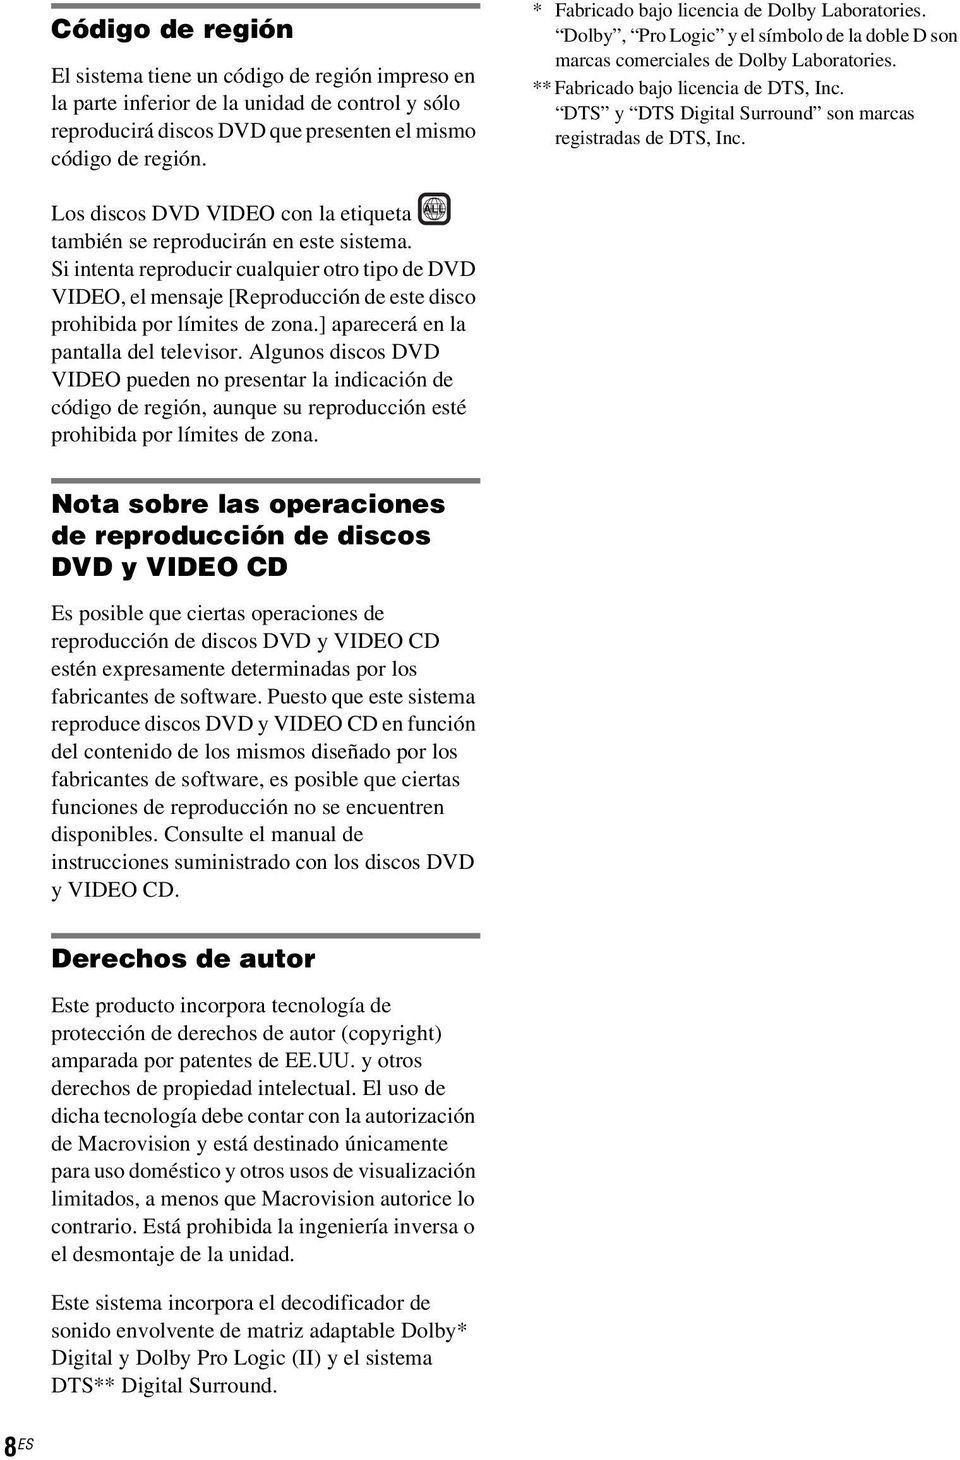 DTS y DTS Digital Surround son marcas registradas de DTS, Inc. ALL Los discos DVD VIDEO con la etiqueta también se reproducirán en este sistema.